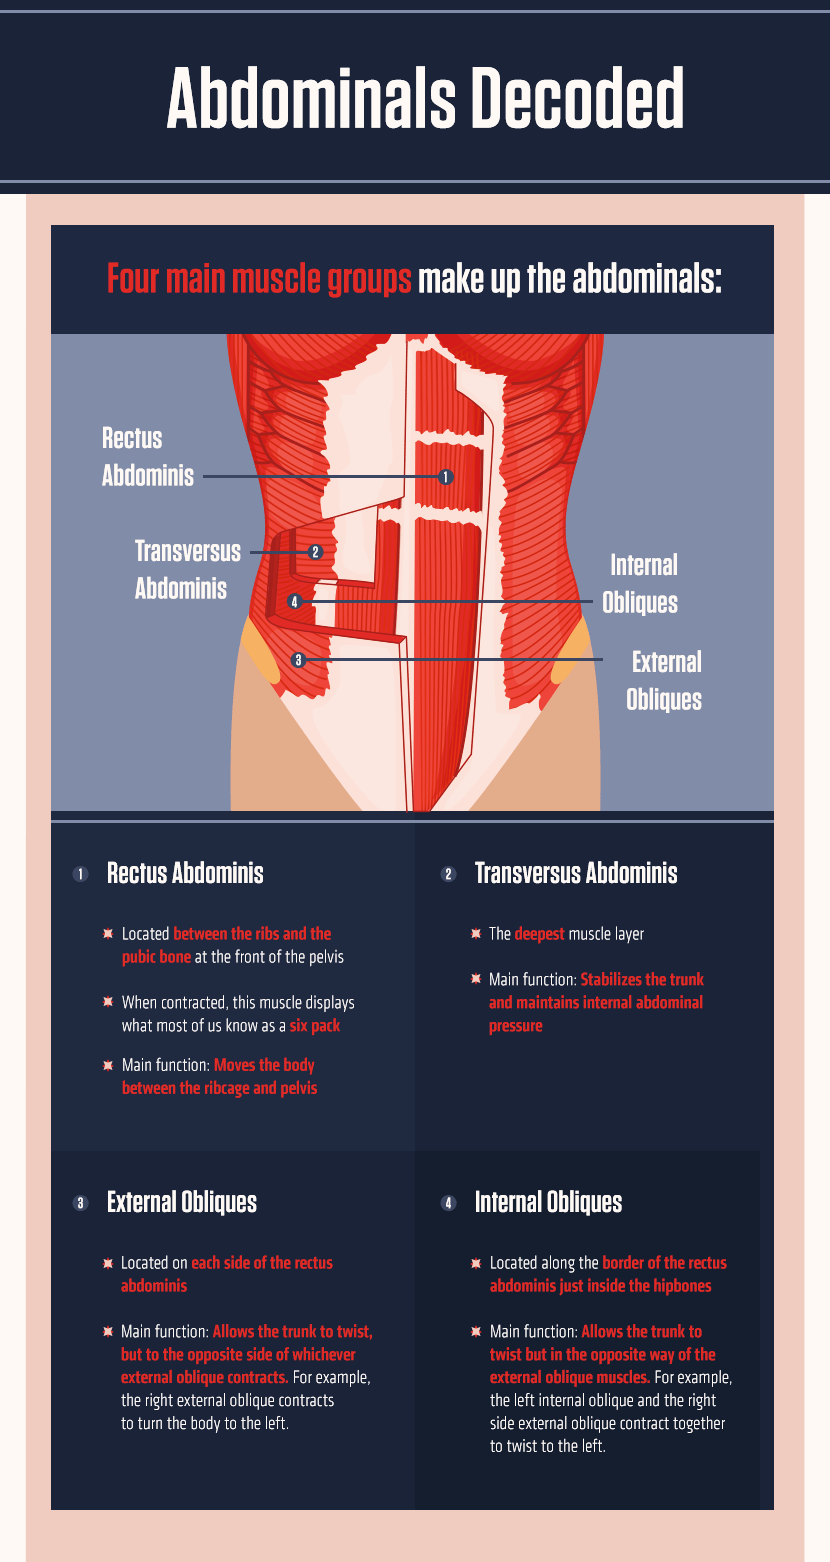 Abdominal Muscles Decoded